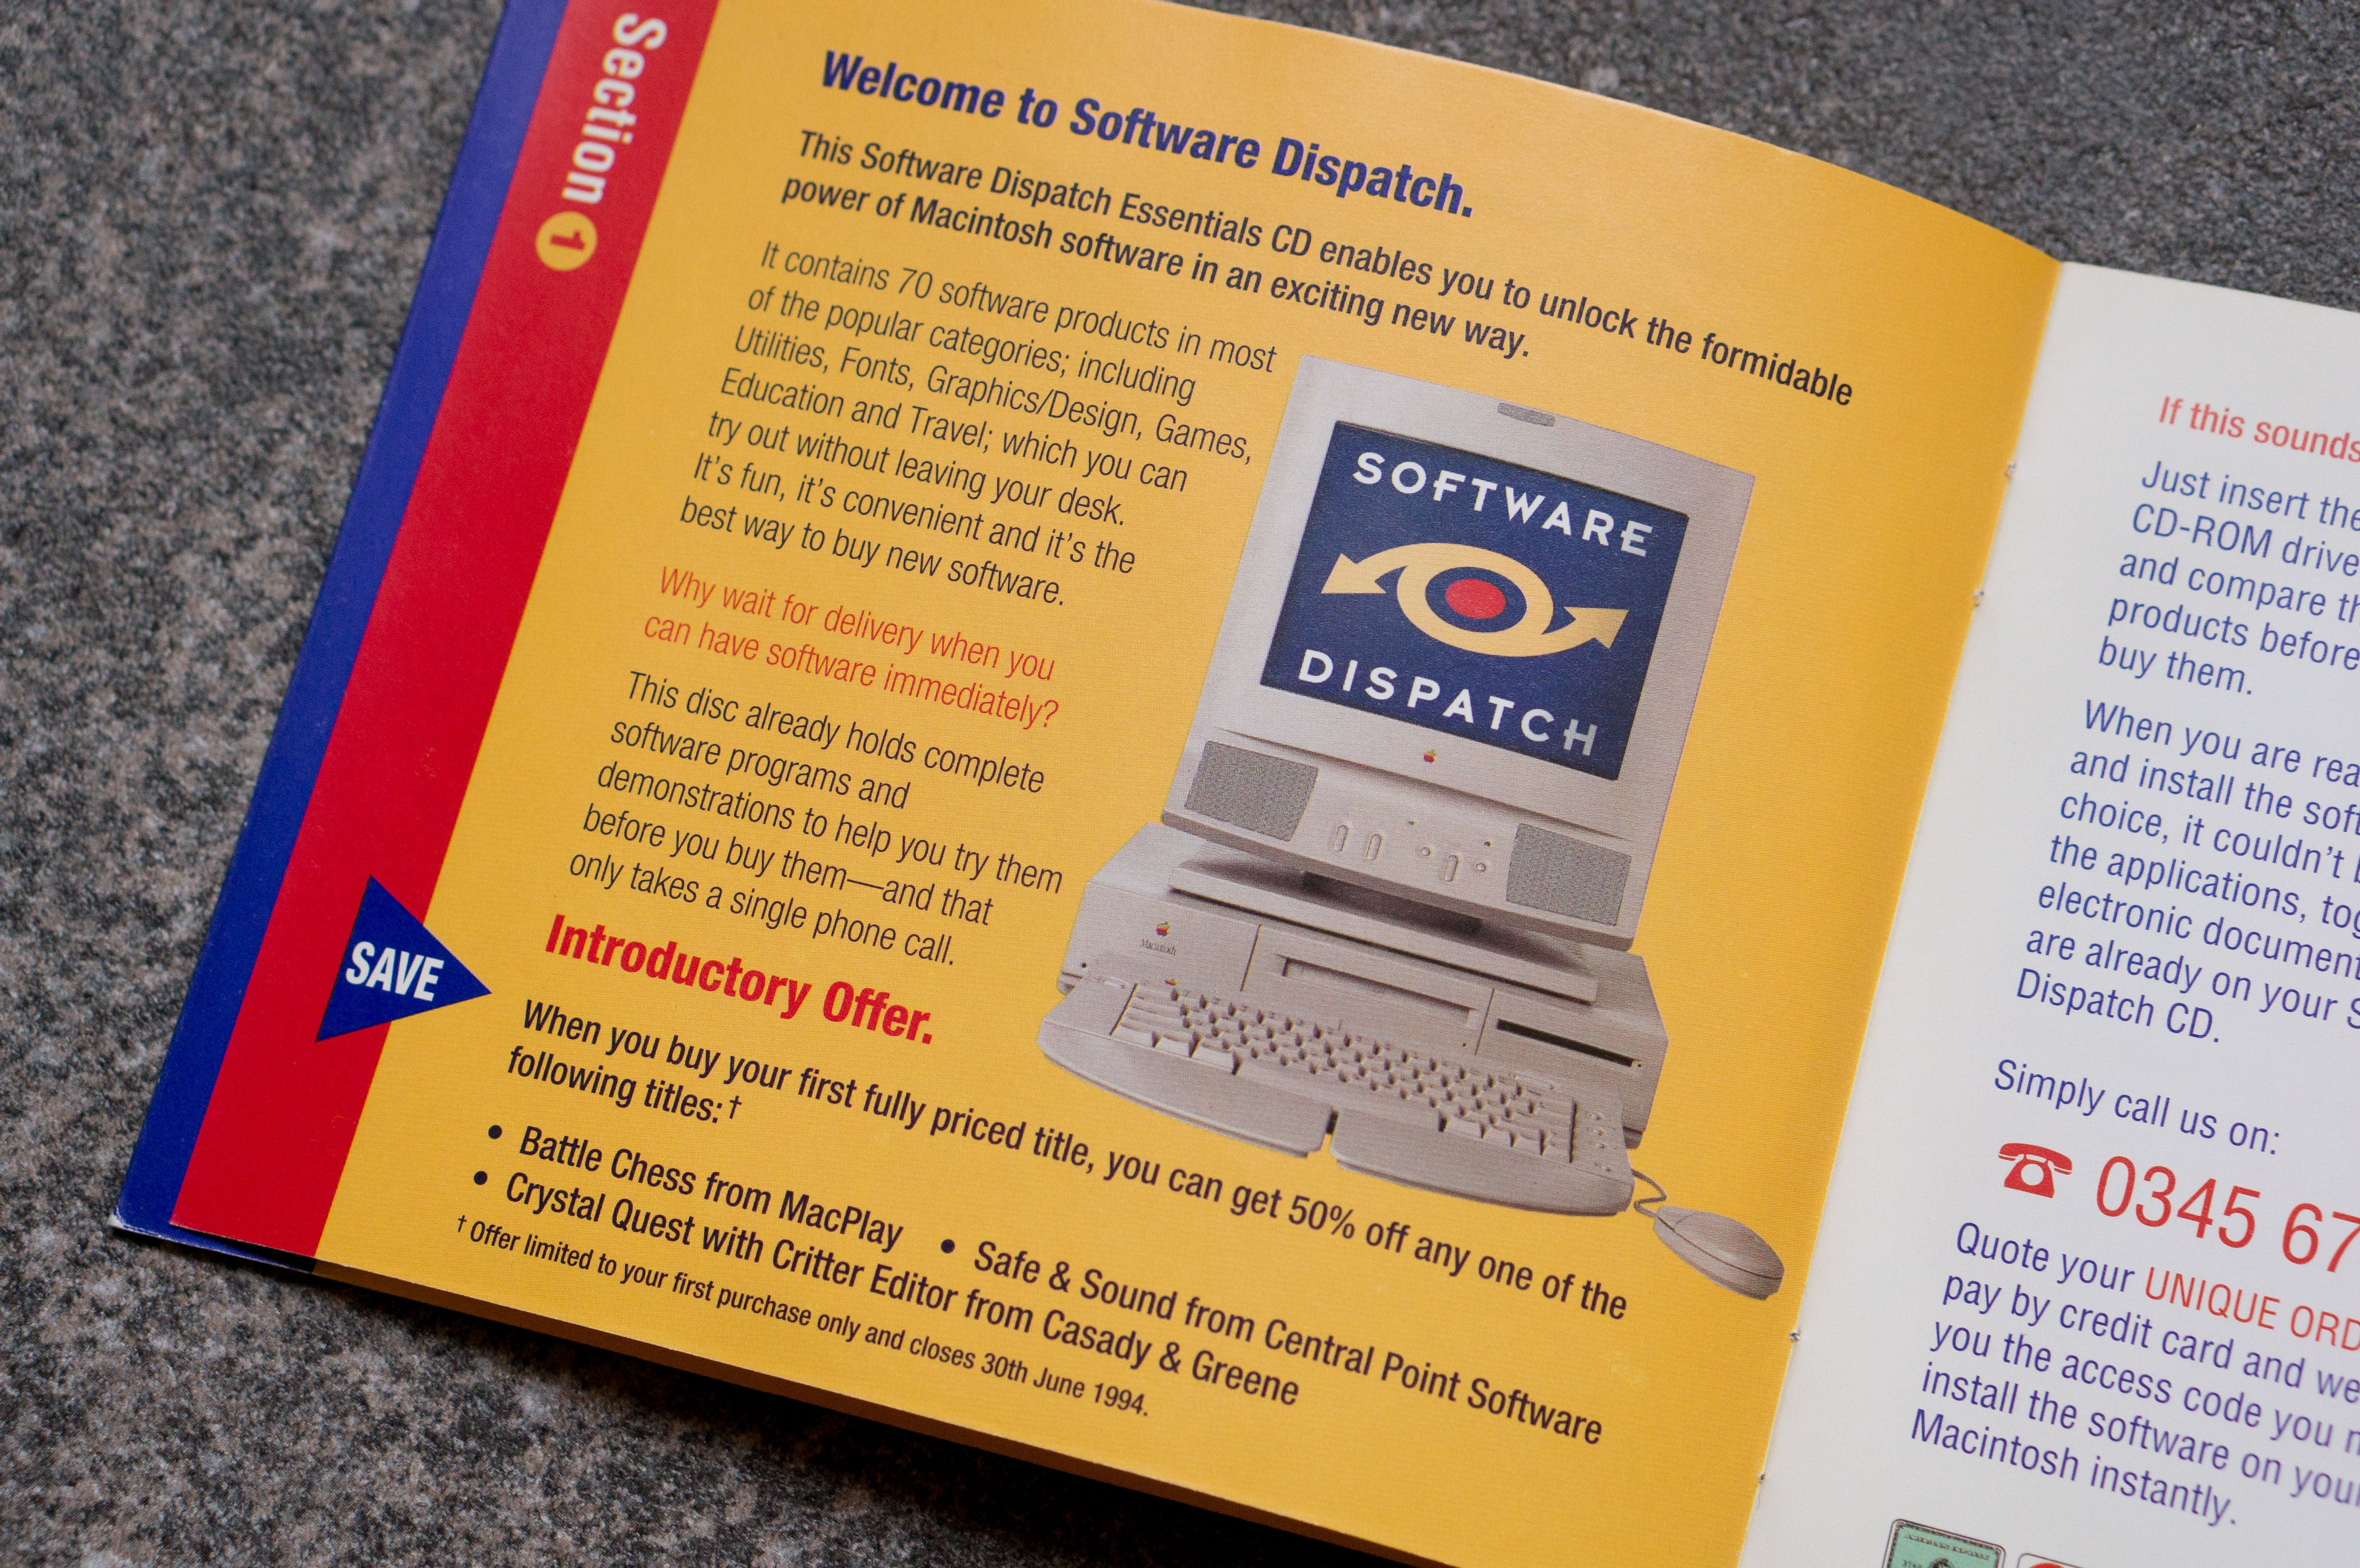 Revisiting Software Dispatch, 1994's Mac App Store on CD-ROM